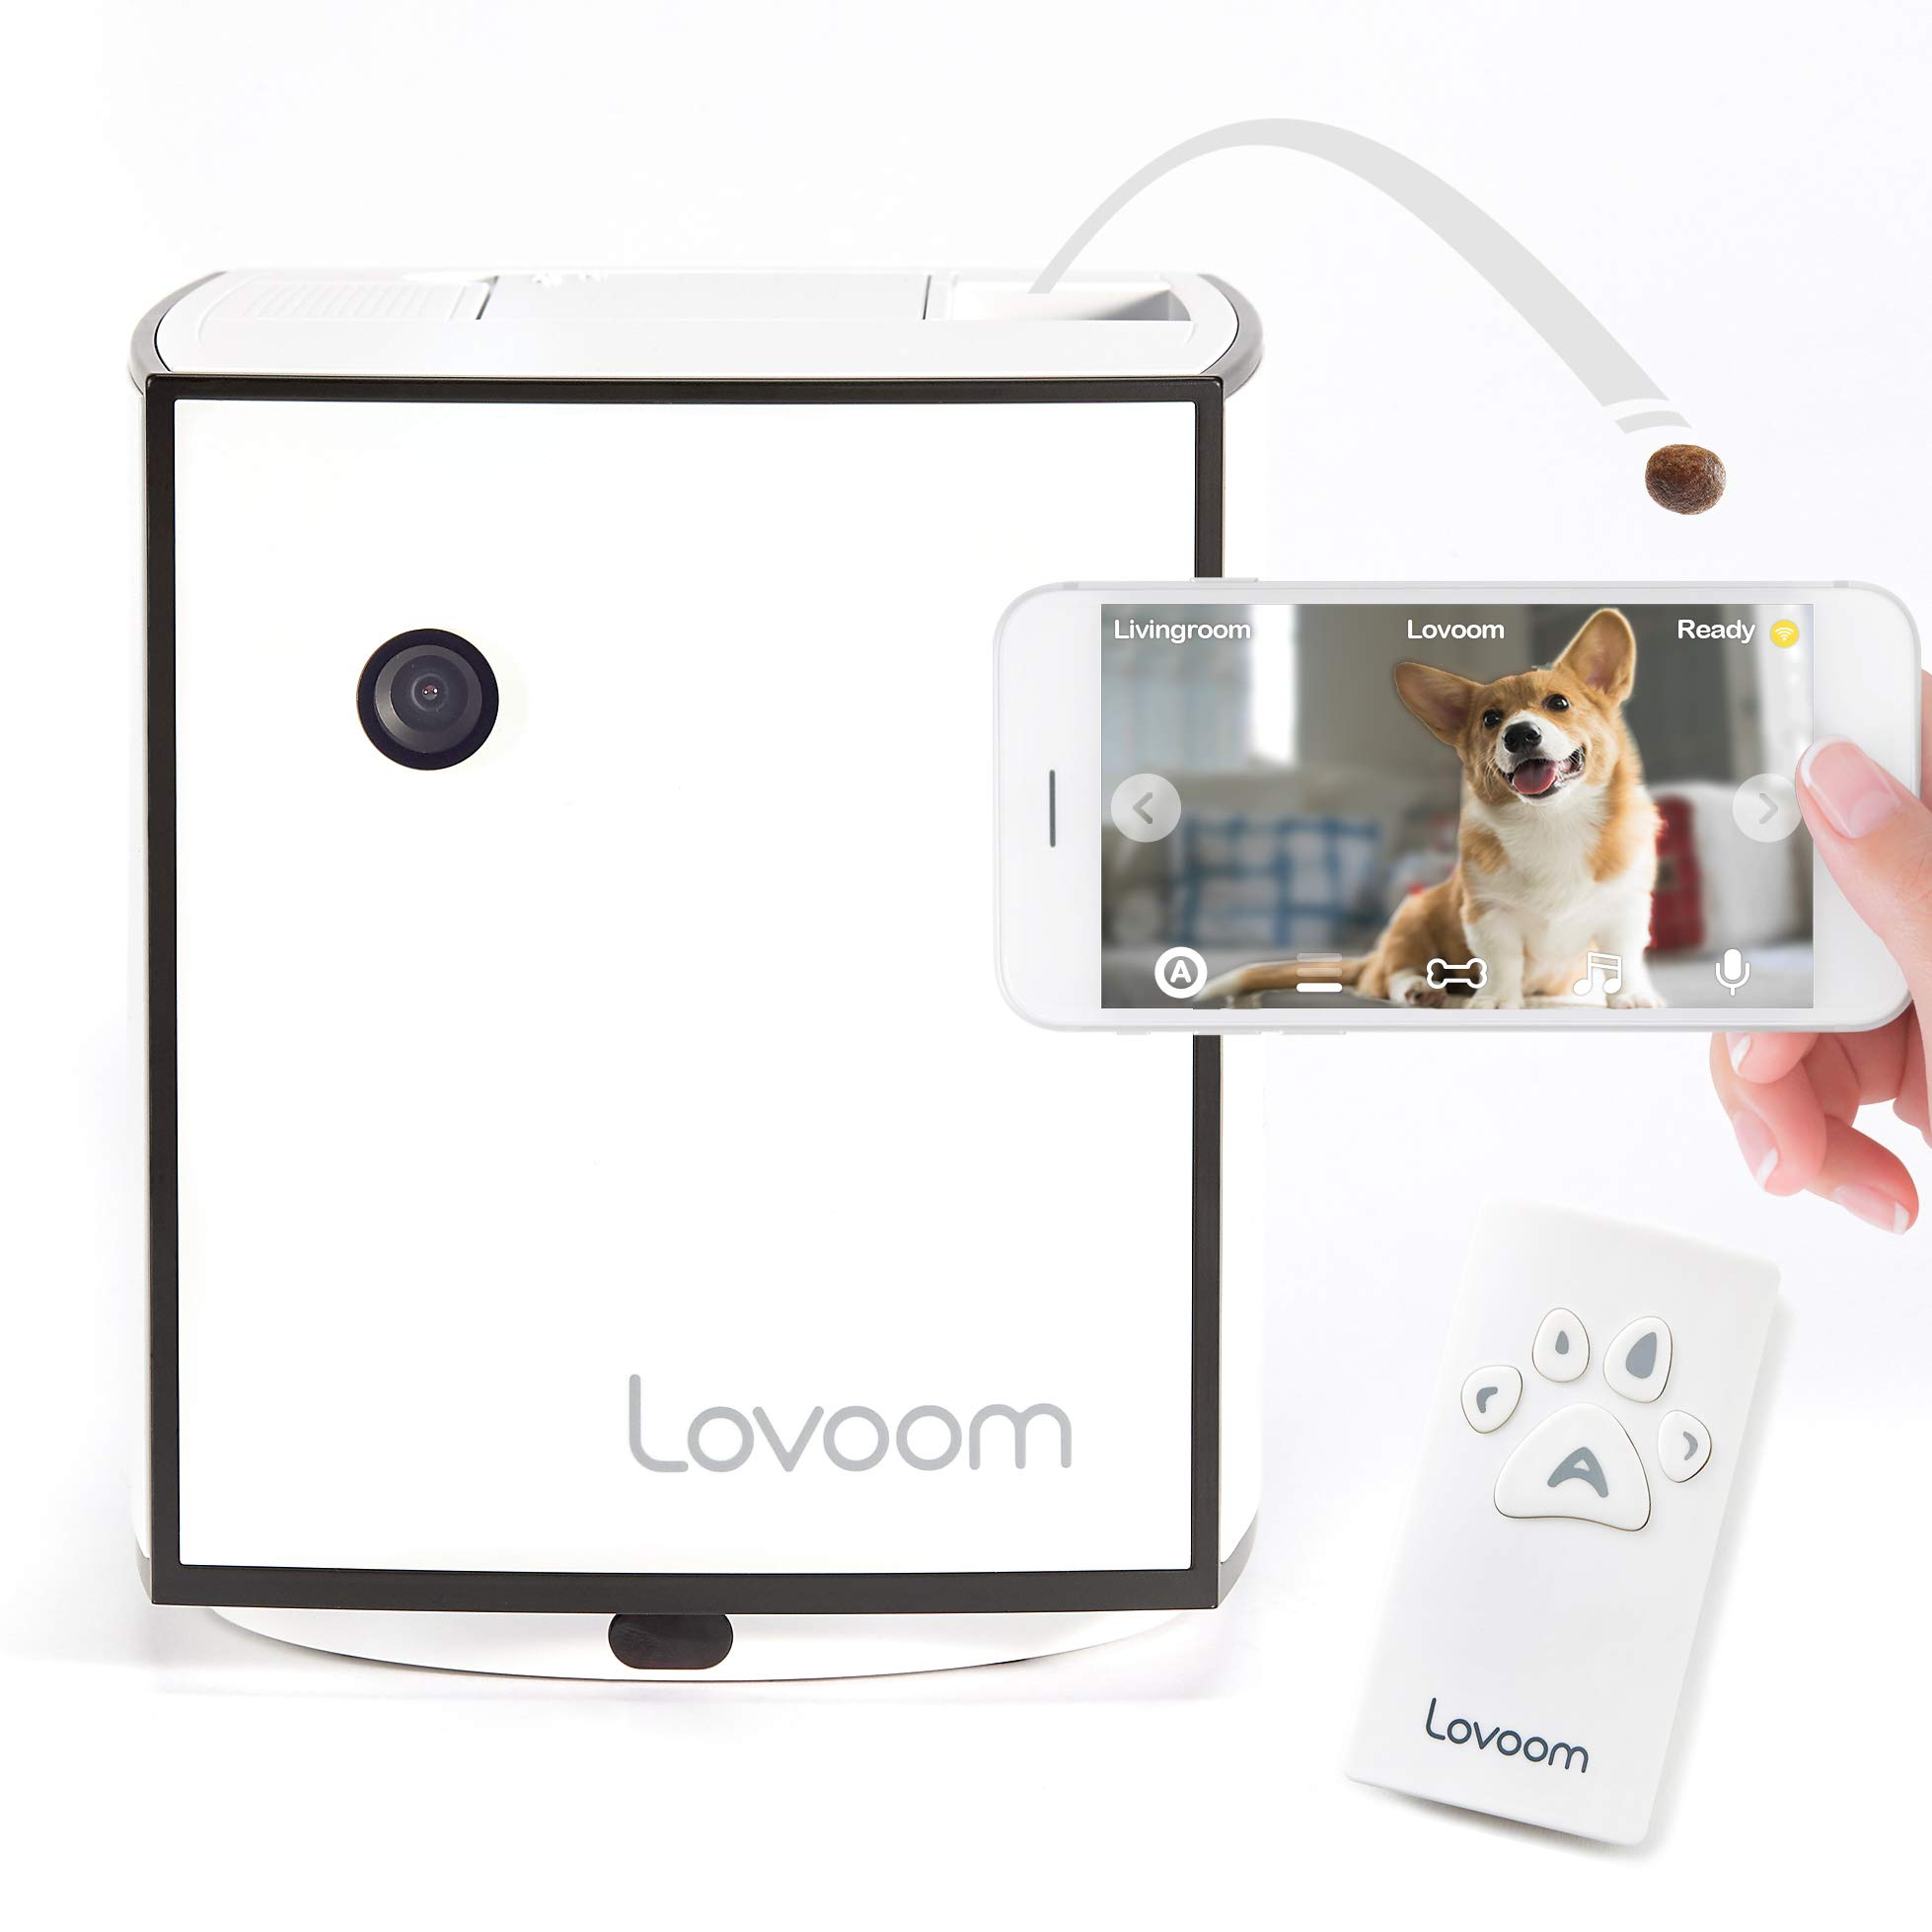 LOVOOM Pet Camera: Kibble Tossing Play, Wi-Fi Kibble Cam with Pan Zoom Two Way Audio Remote Control for Dogs and Cats (Black) by LOVOOM (Image #1)